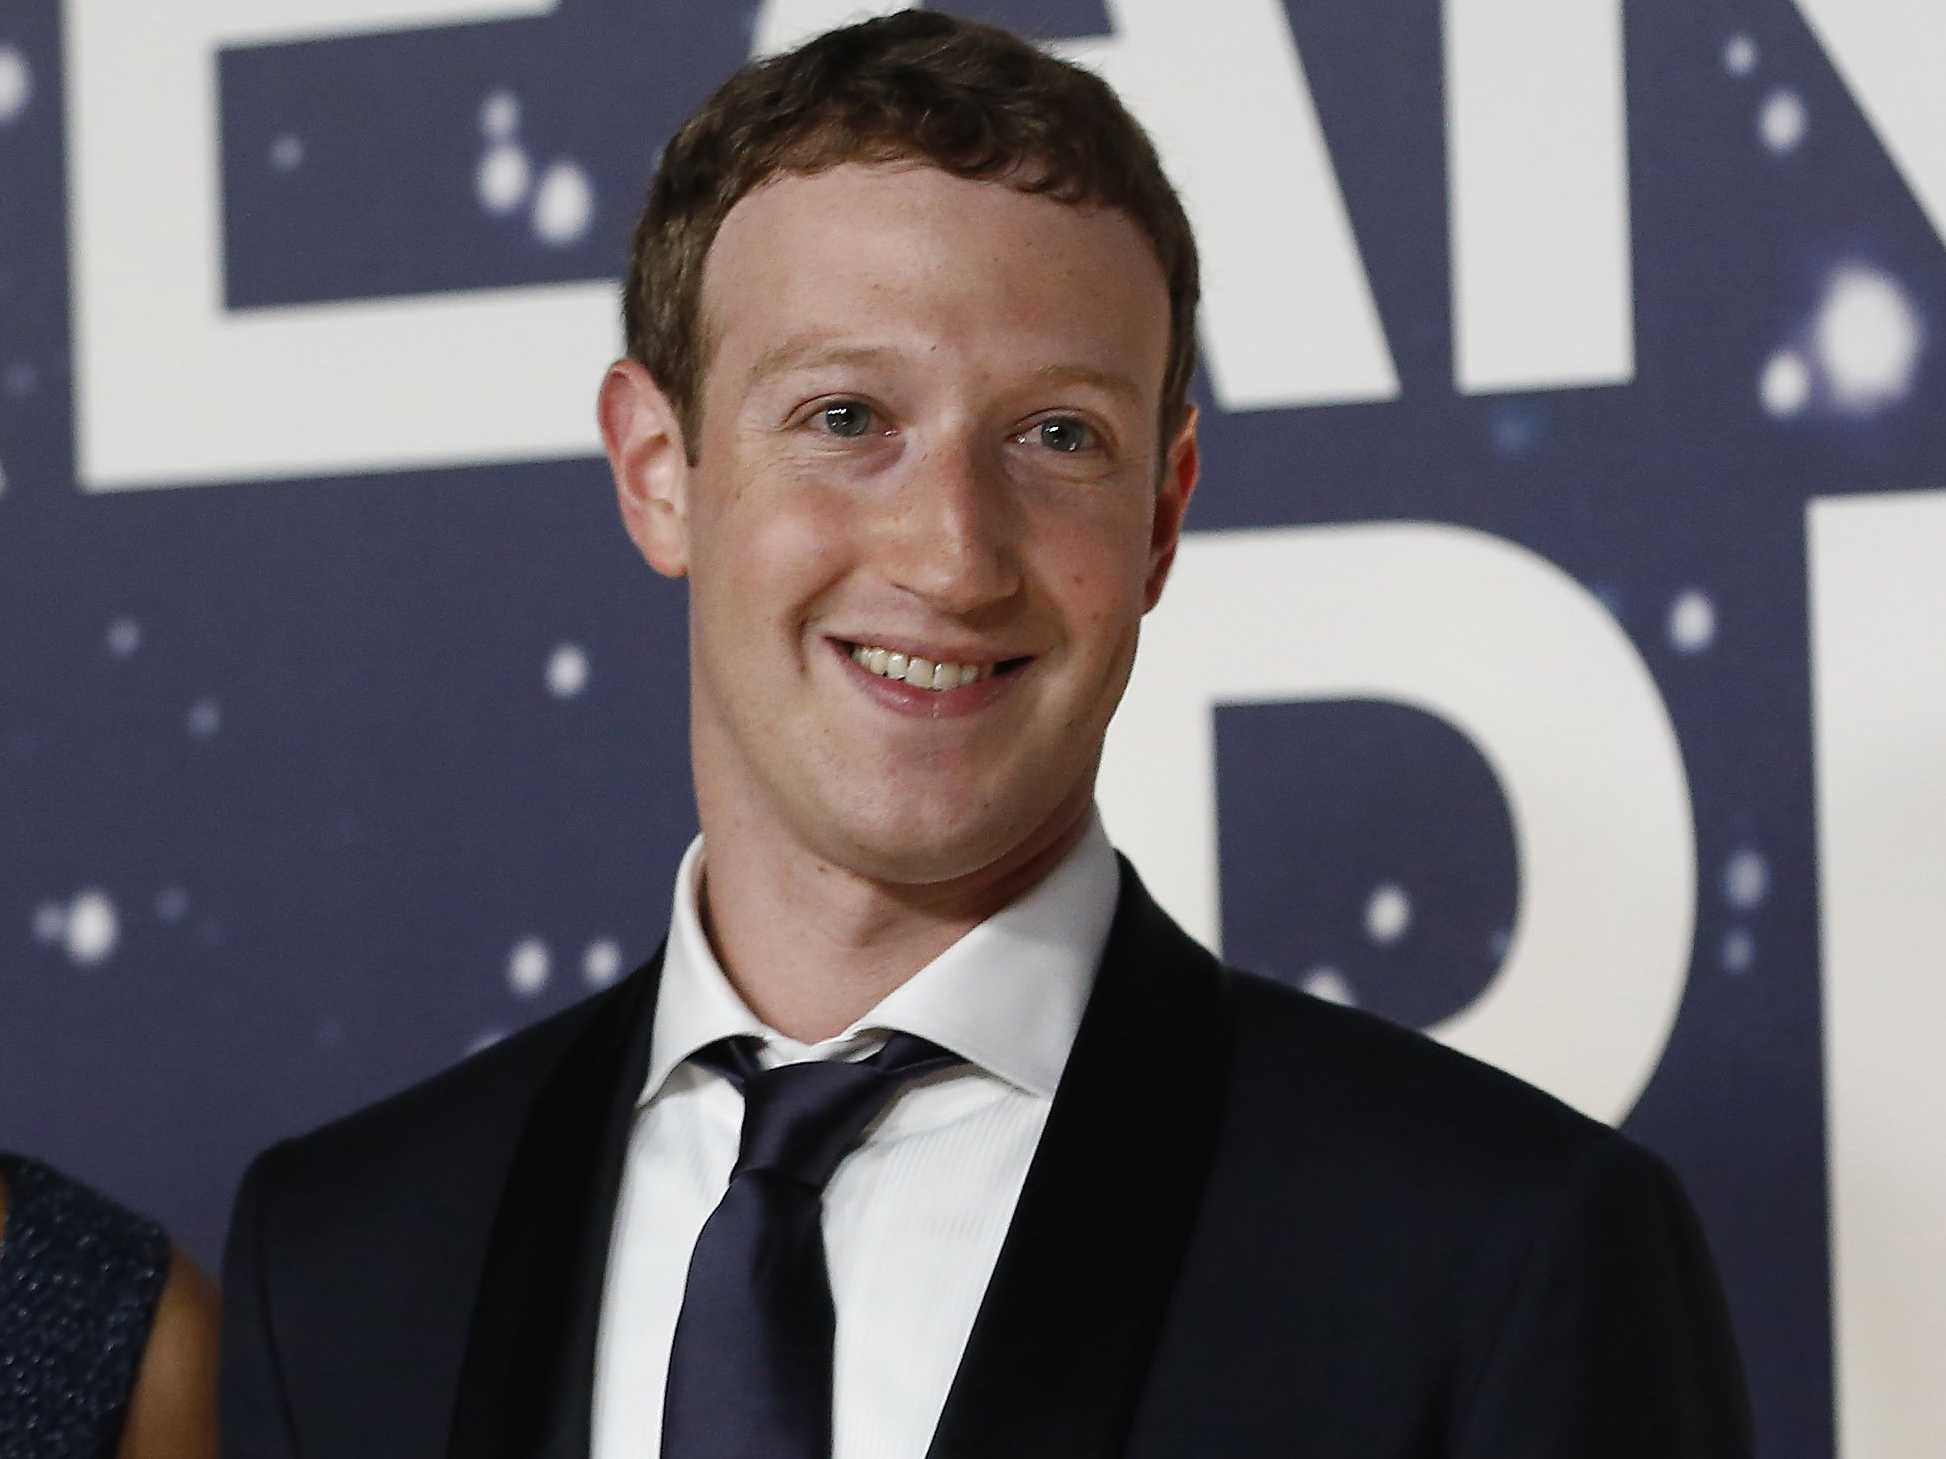 Unlucky engineering student sells his domain to facebook for just $700 !